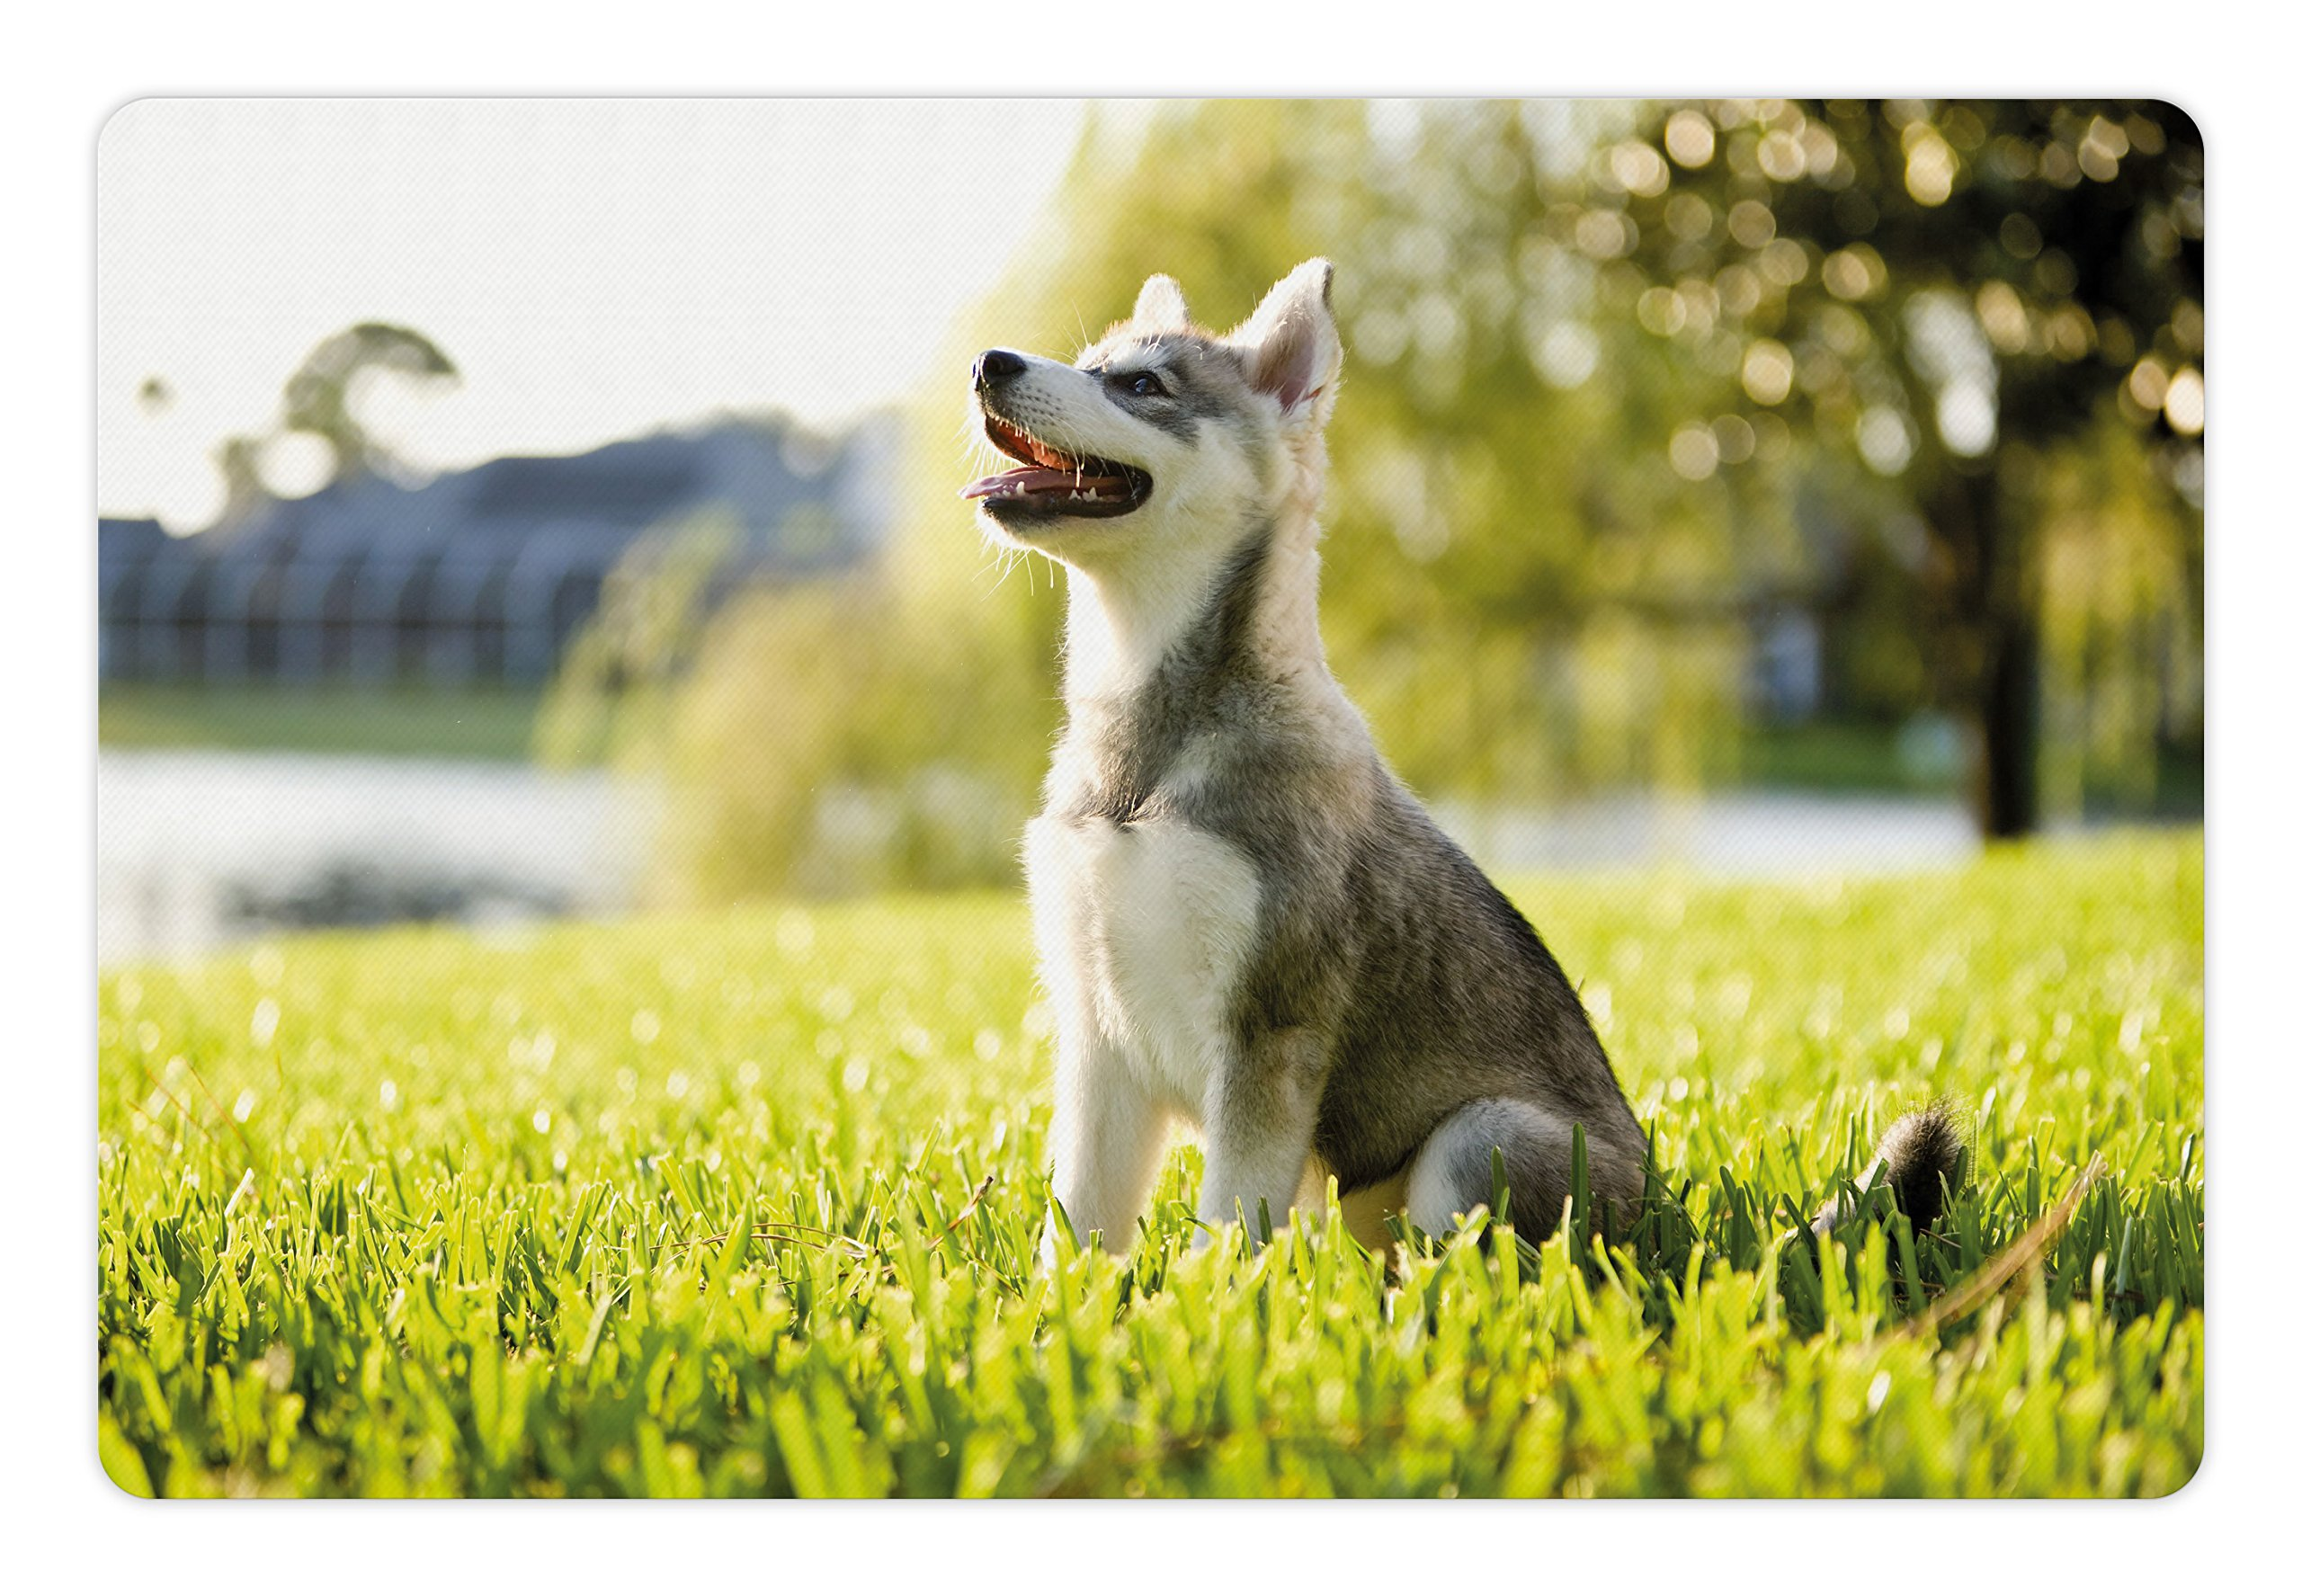 Ambesonne Alaskan Malamute Pet Mat for Food and Water, Klee Kai Puppy Sitting on Grass Looking Up Friendly Young Cute Animal, Rectangle Non-Slip Rubber Mat for Dogs and Cats, Multicolor